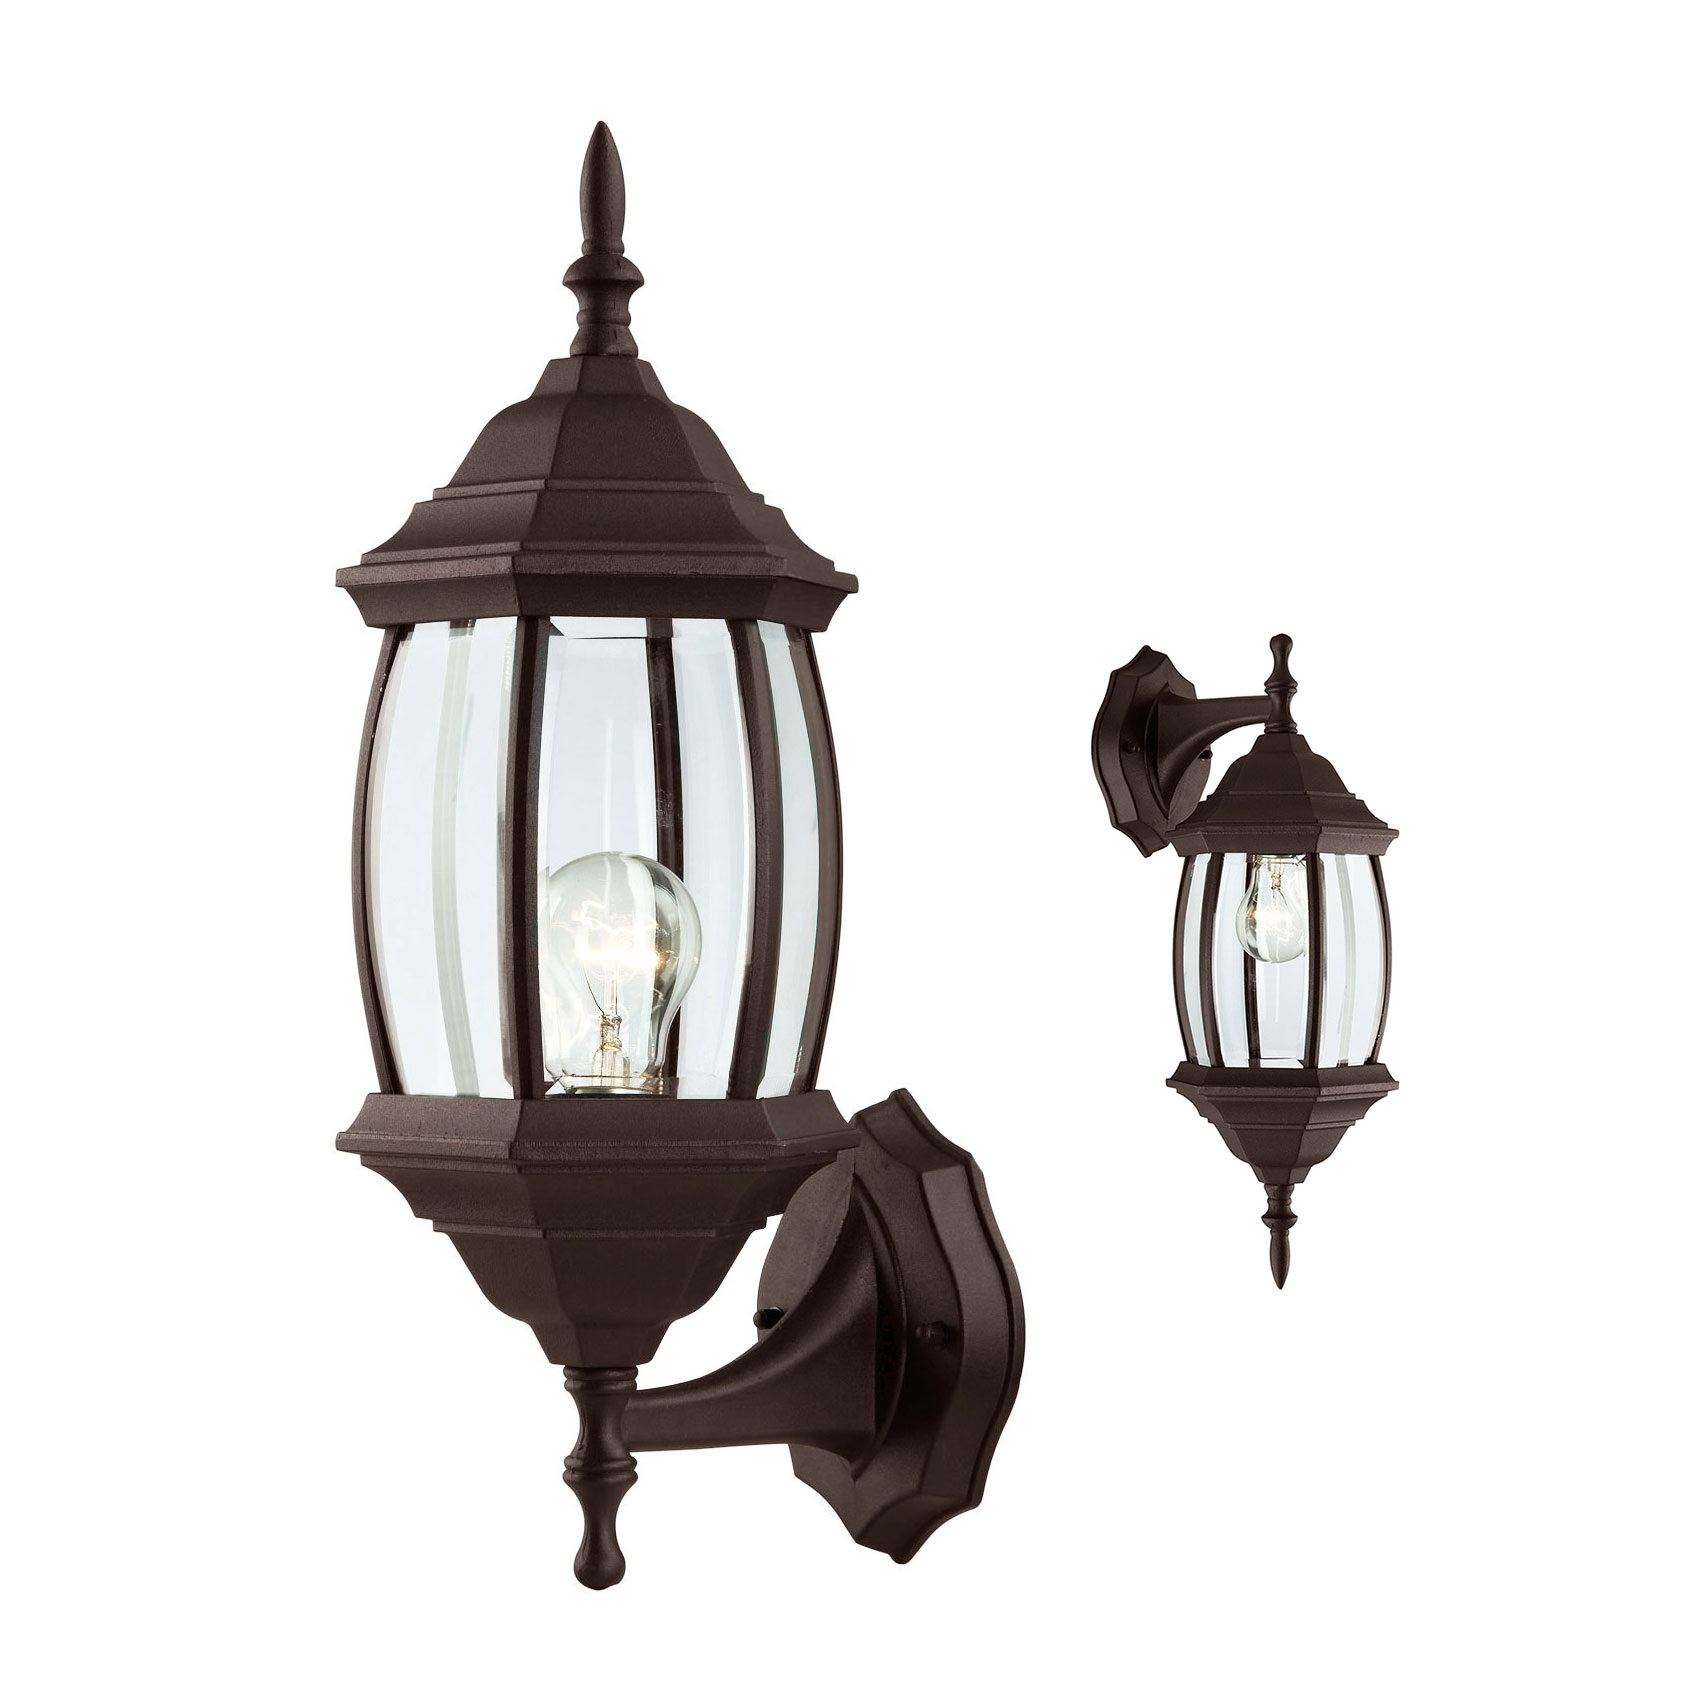 Outdoor Exterior Wall Sconce Lantern Light Fixture, Oil Rubbed Bronze by